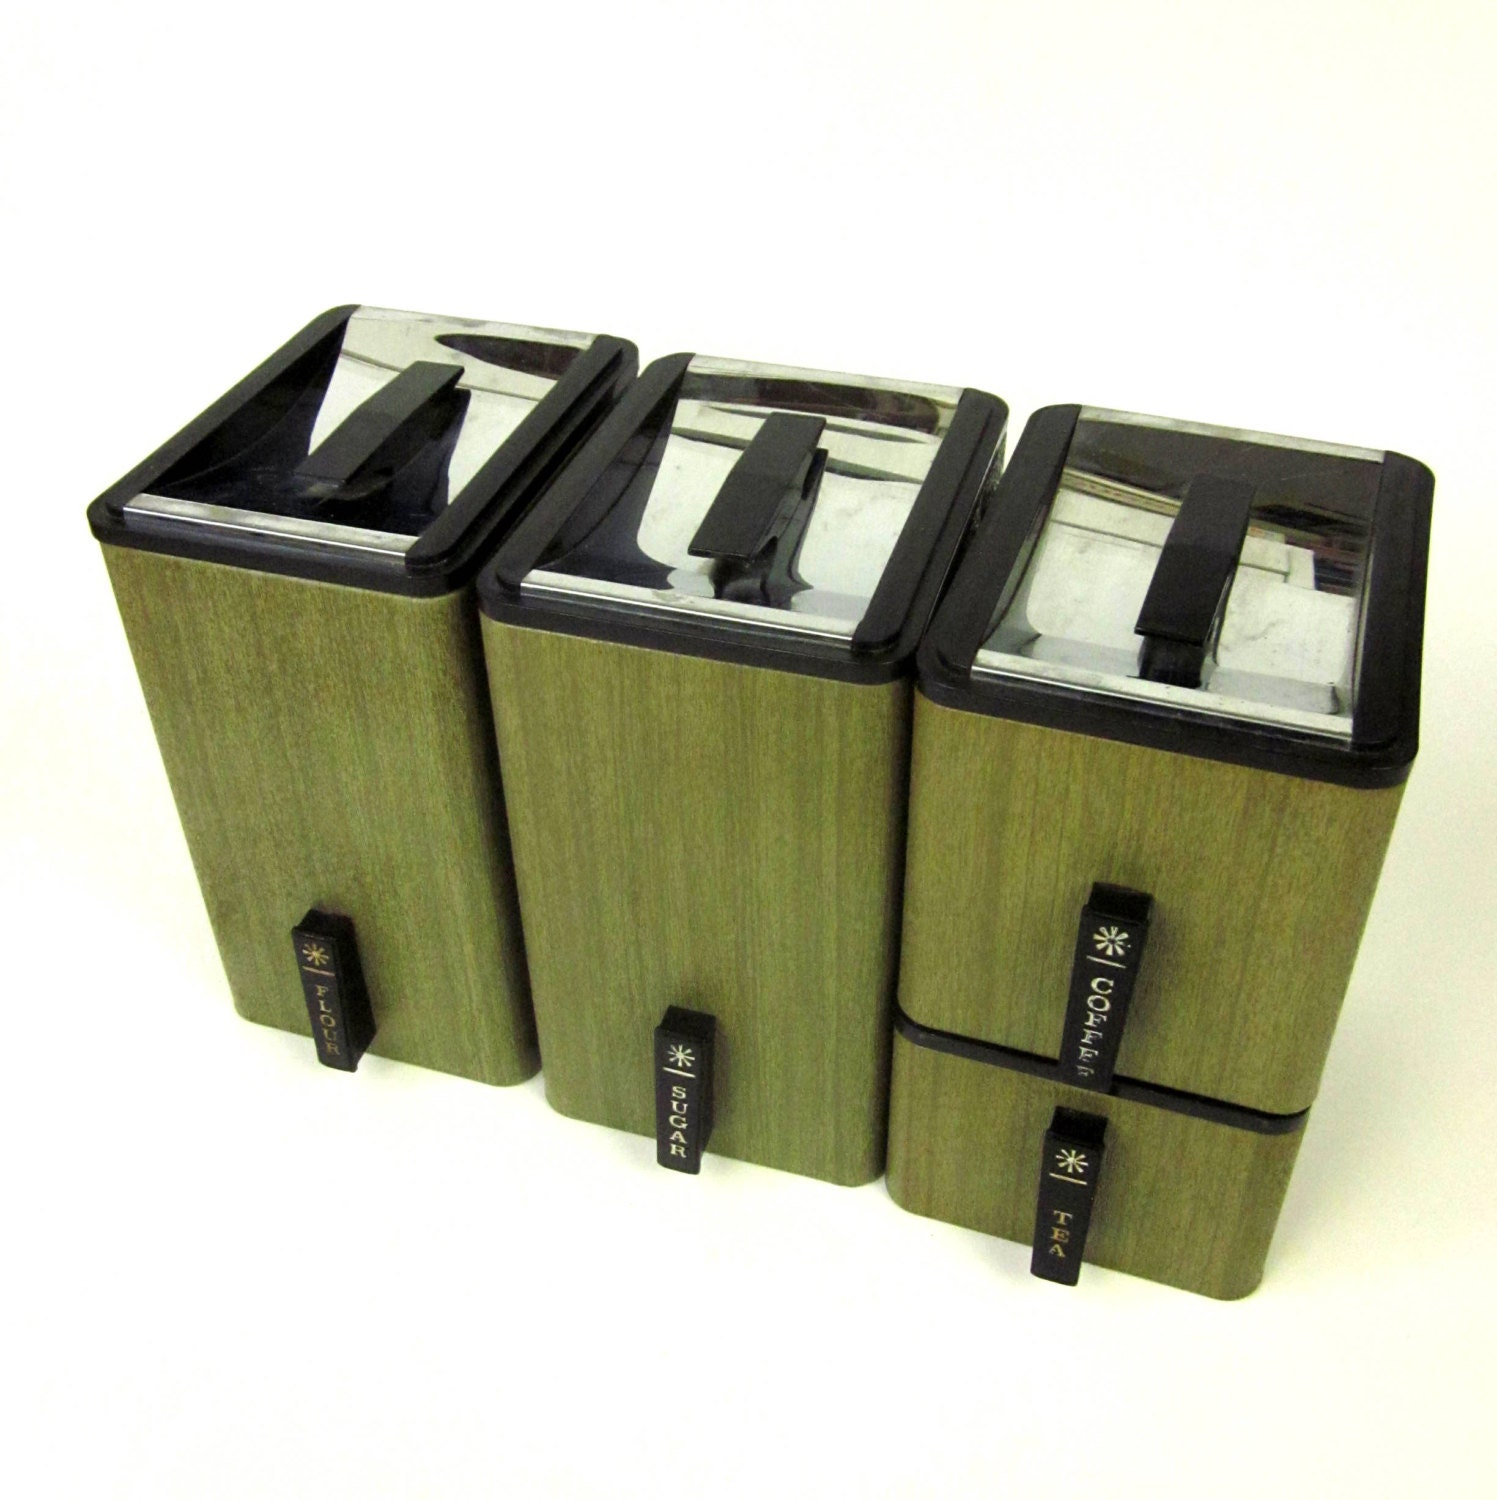 Kromex Kitchen Canister Set 60s / Avocado Green by